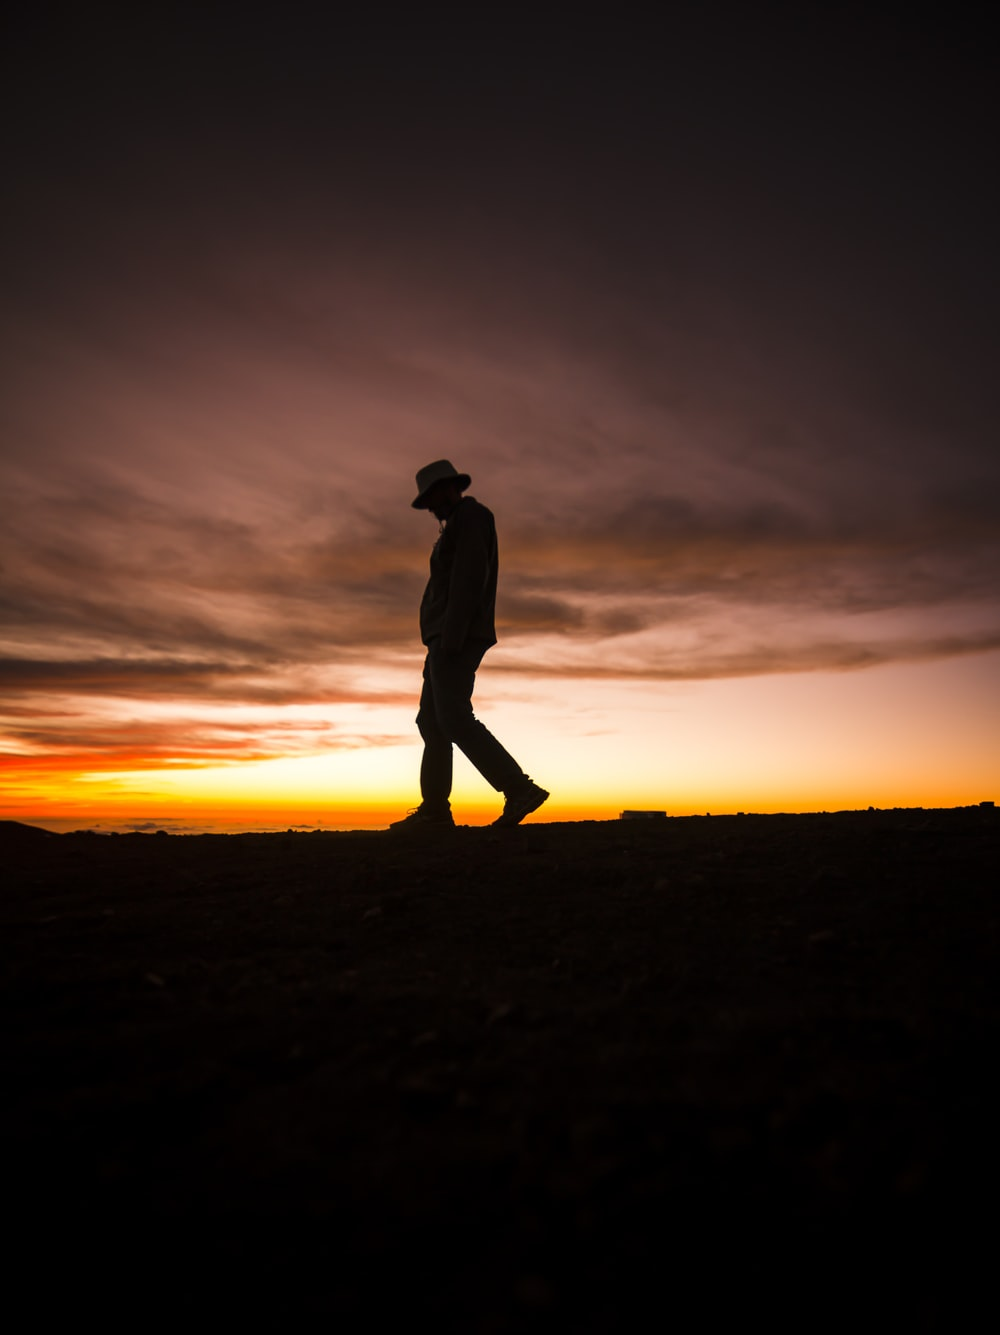 100 silhouette pictures download free images on unsplash